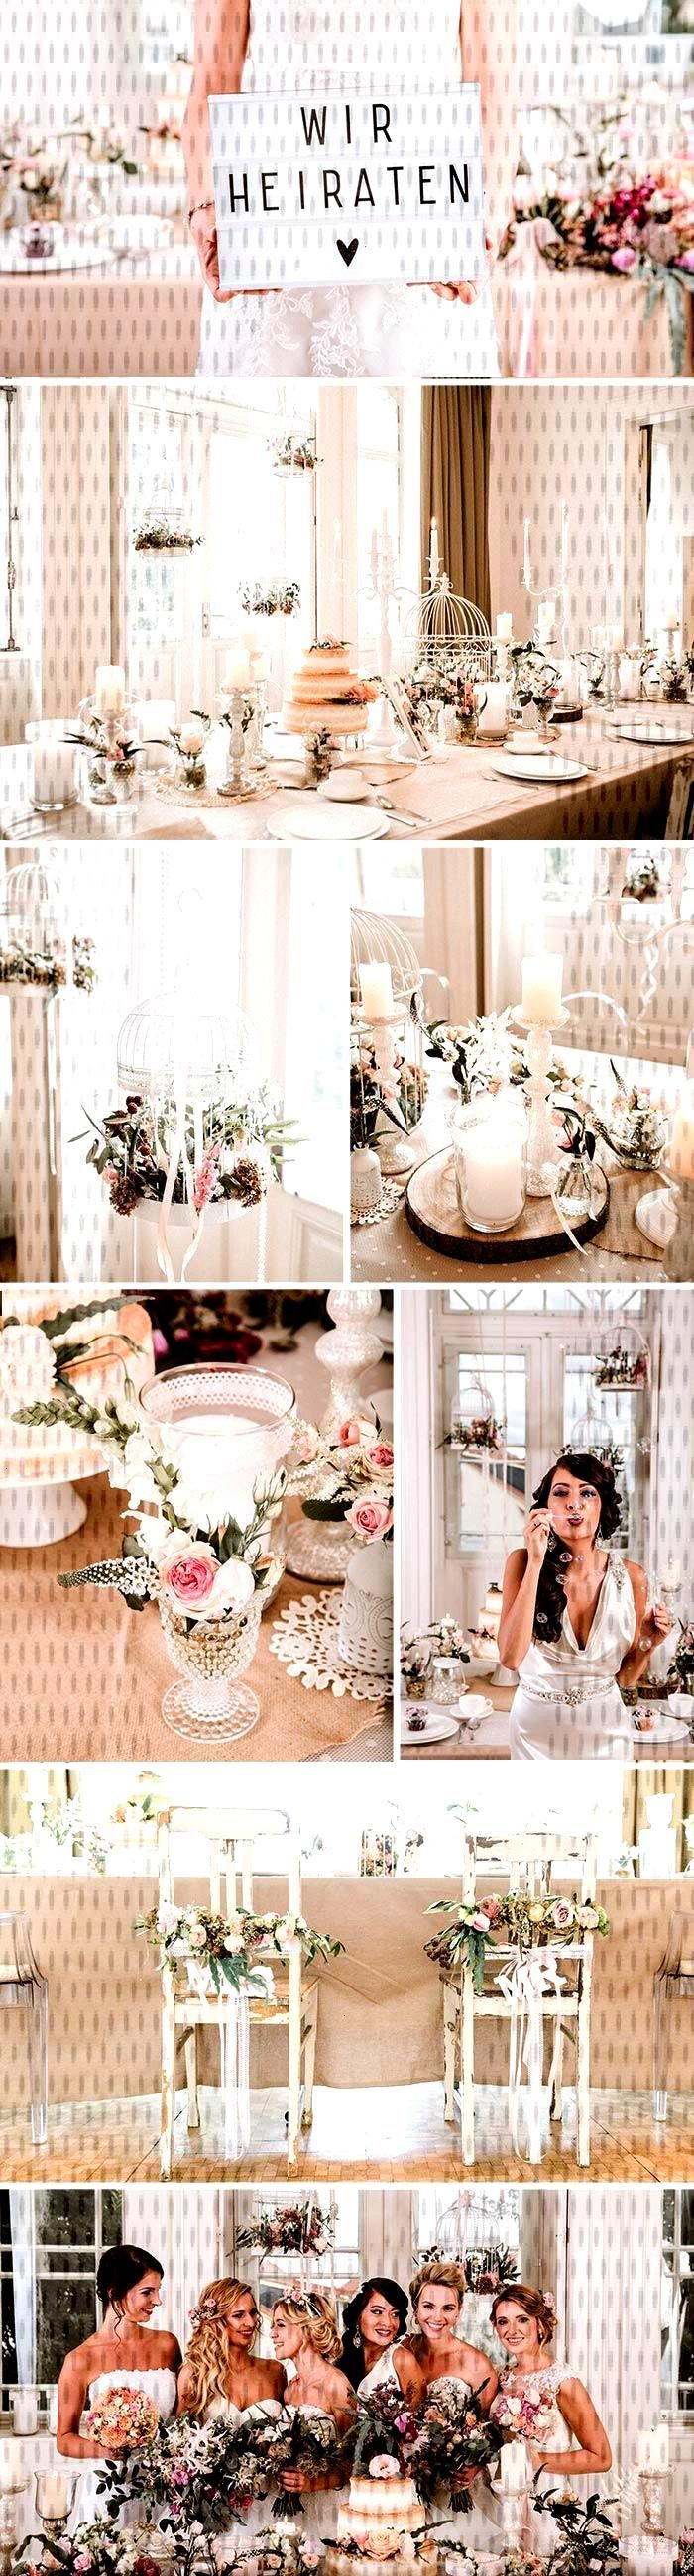 Wonderful Free of Charge Wedding Centerpieces classic Style Wonderful Free of Charge Wedding Center